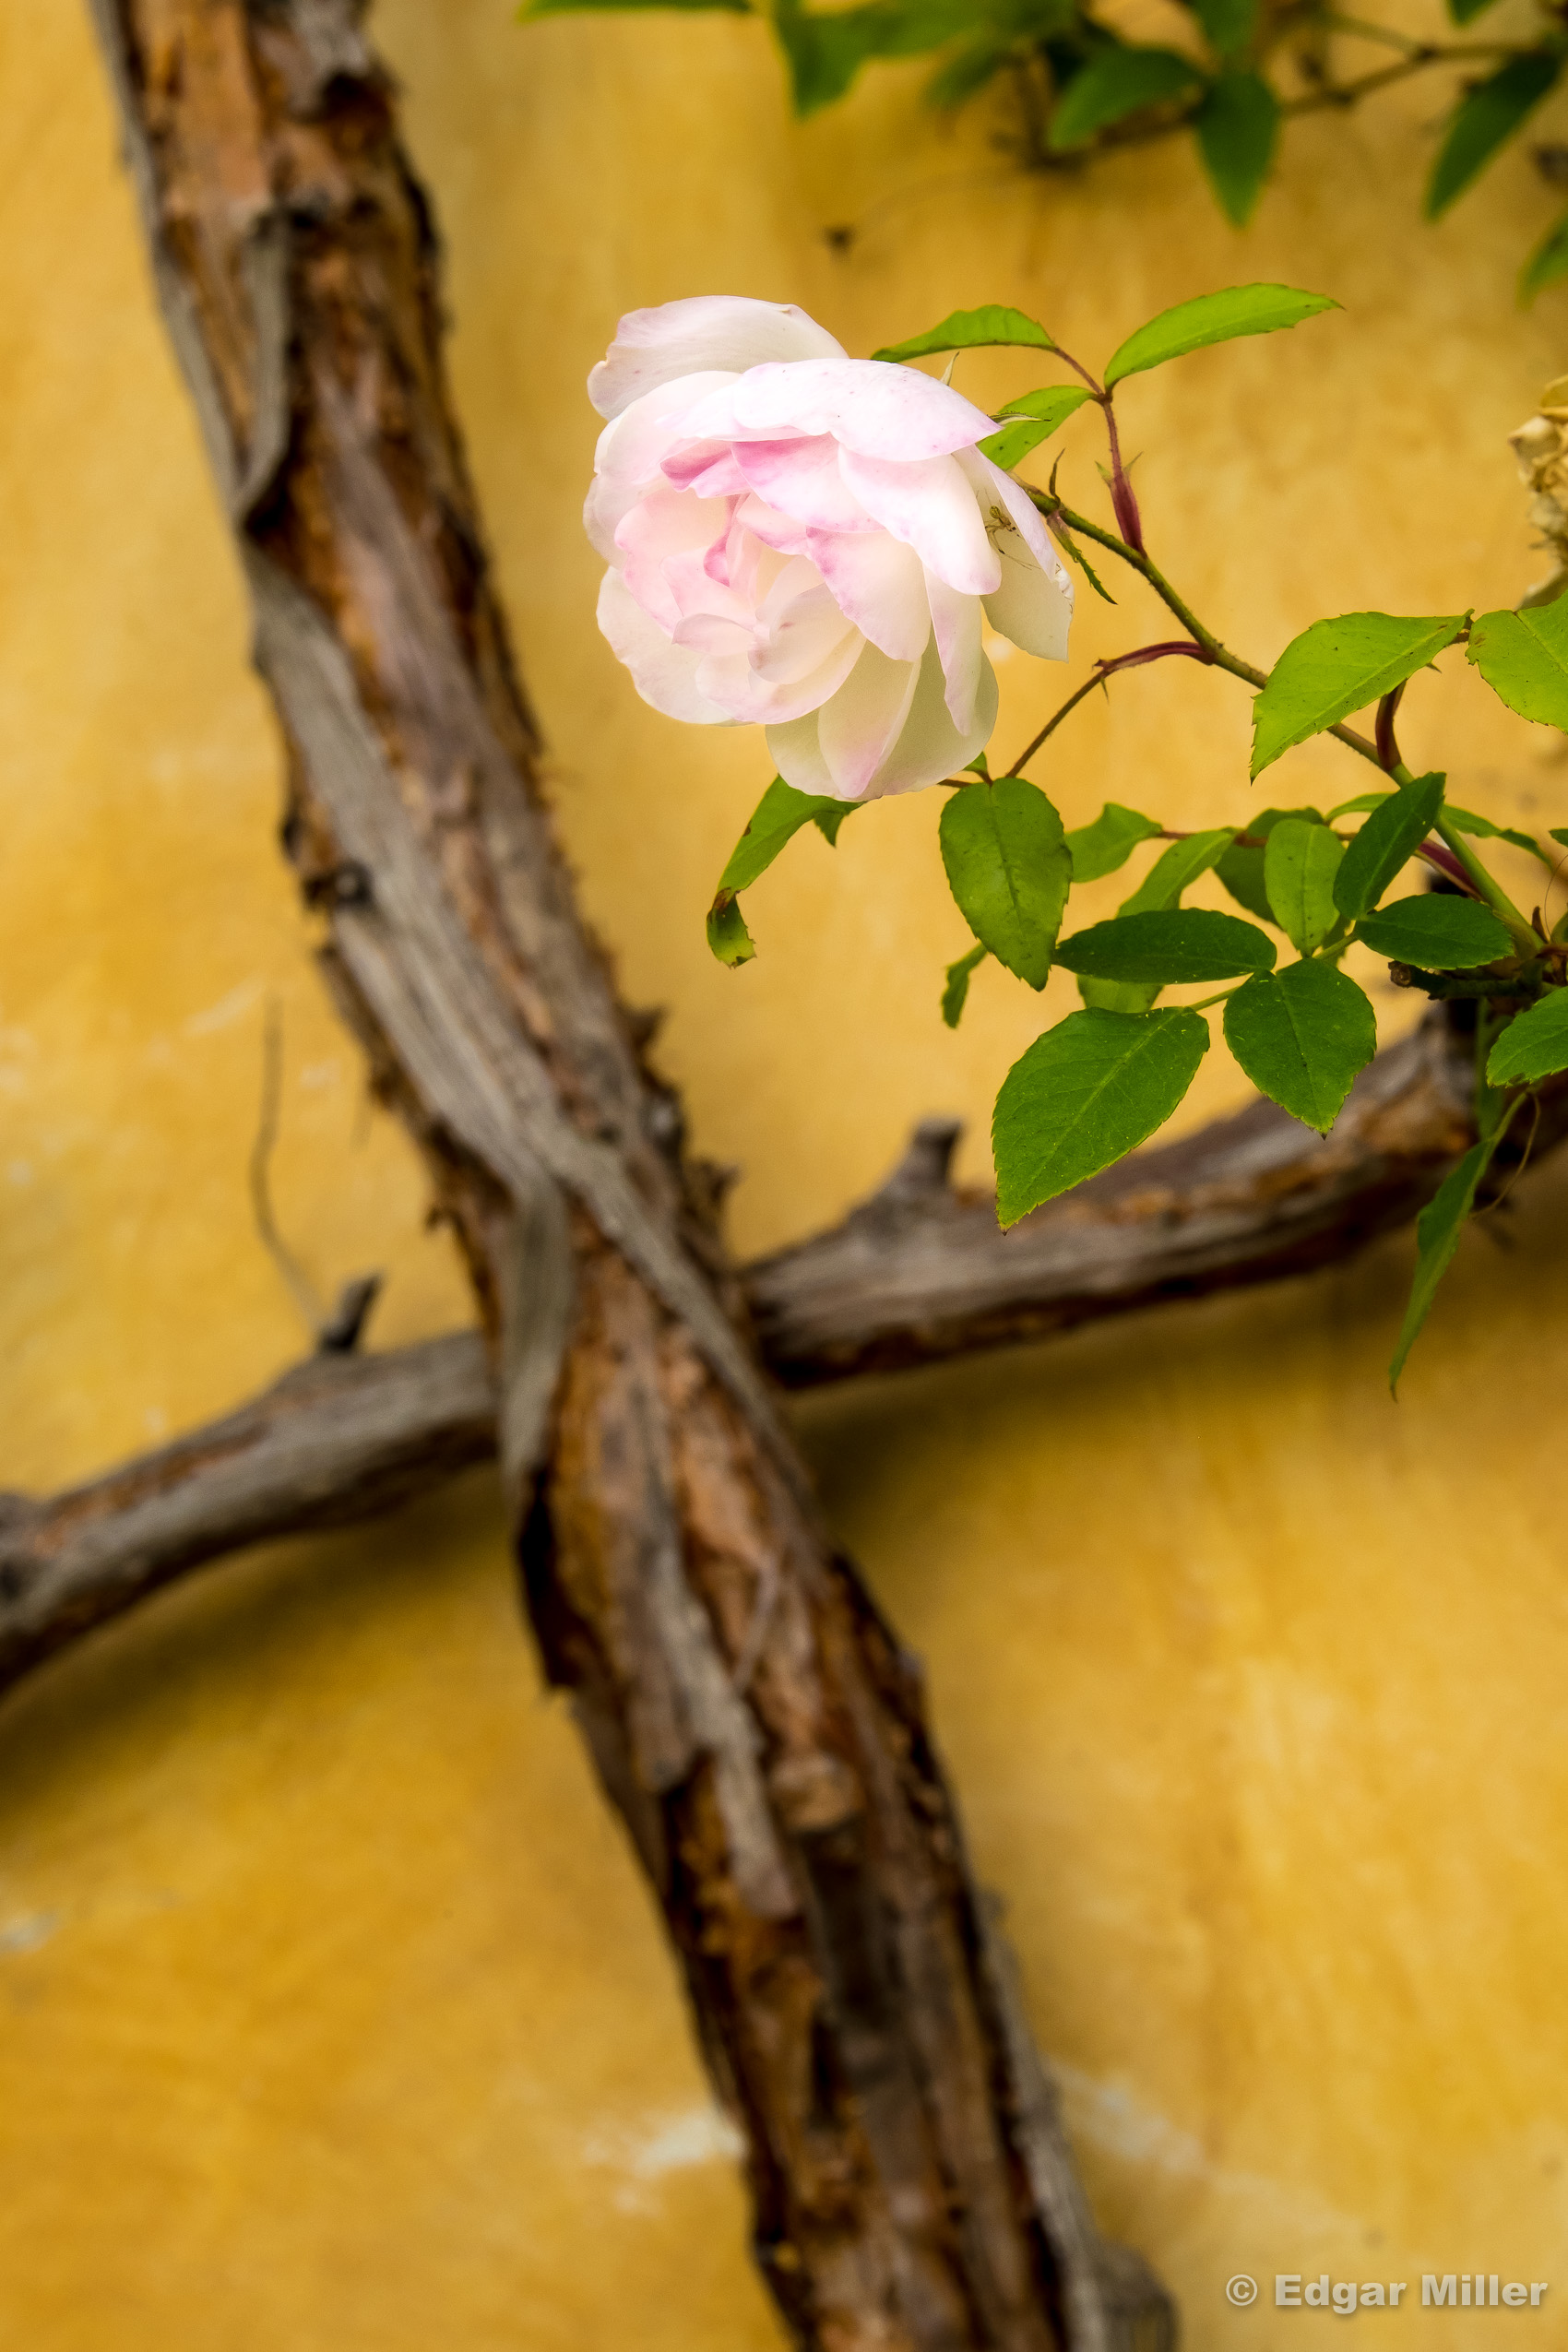 Rose & Vine, Carmel Mission, California